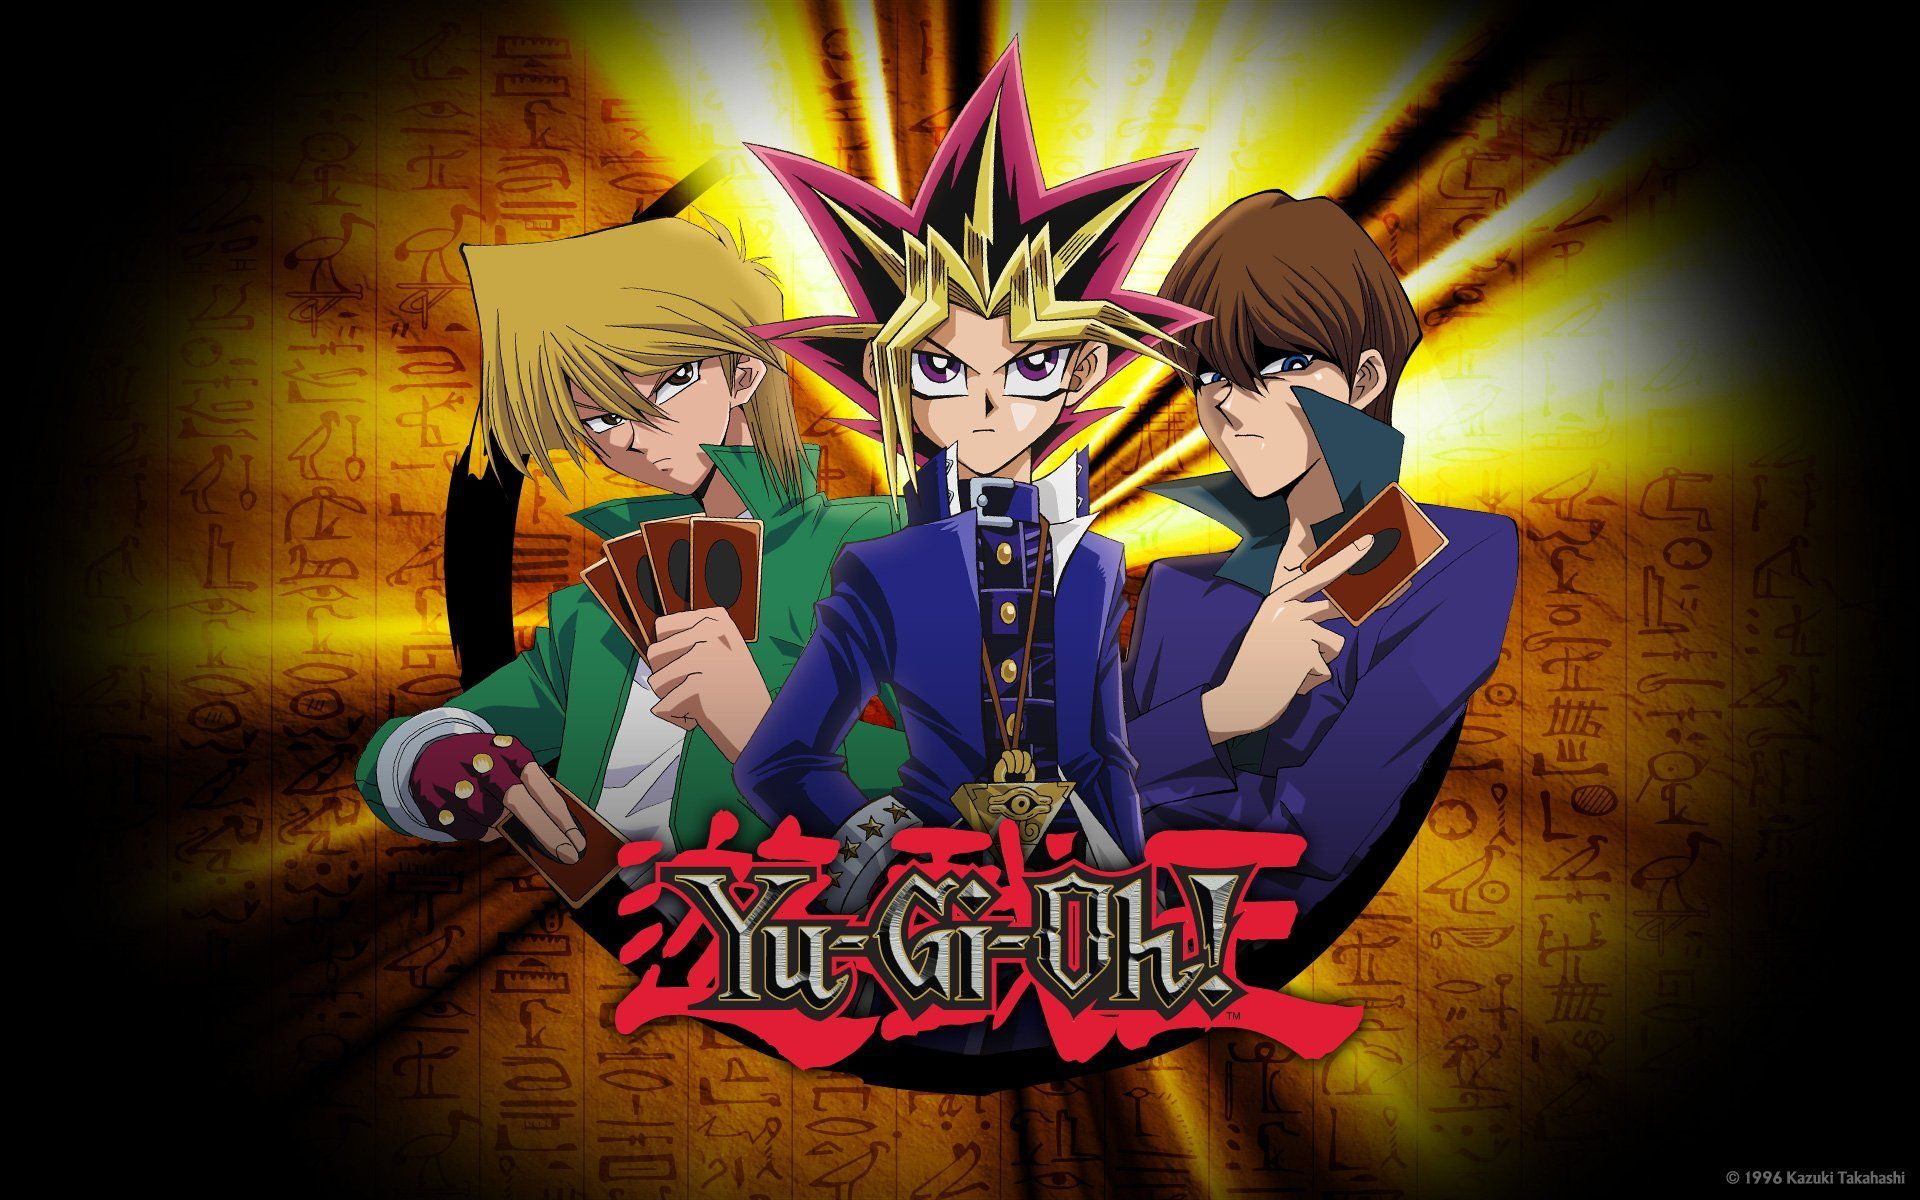 Yugioh Wallpapers Desktop Background Drawings For Kids Computers 1280 800 Yu Gi Oh Backgrounds 40 Wallpapers Adorable Wallpape With Images Anime Cartoon Pics Yugioh